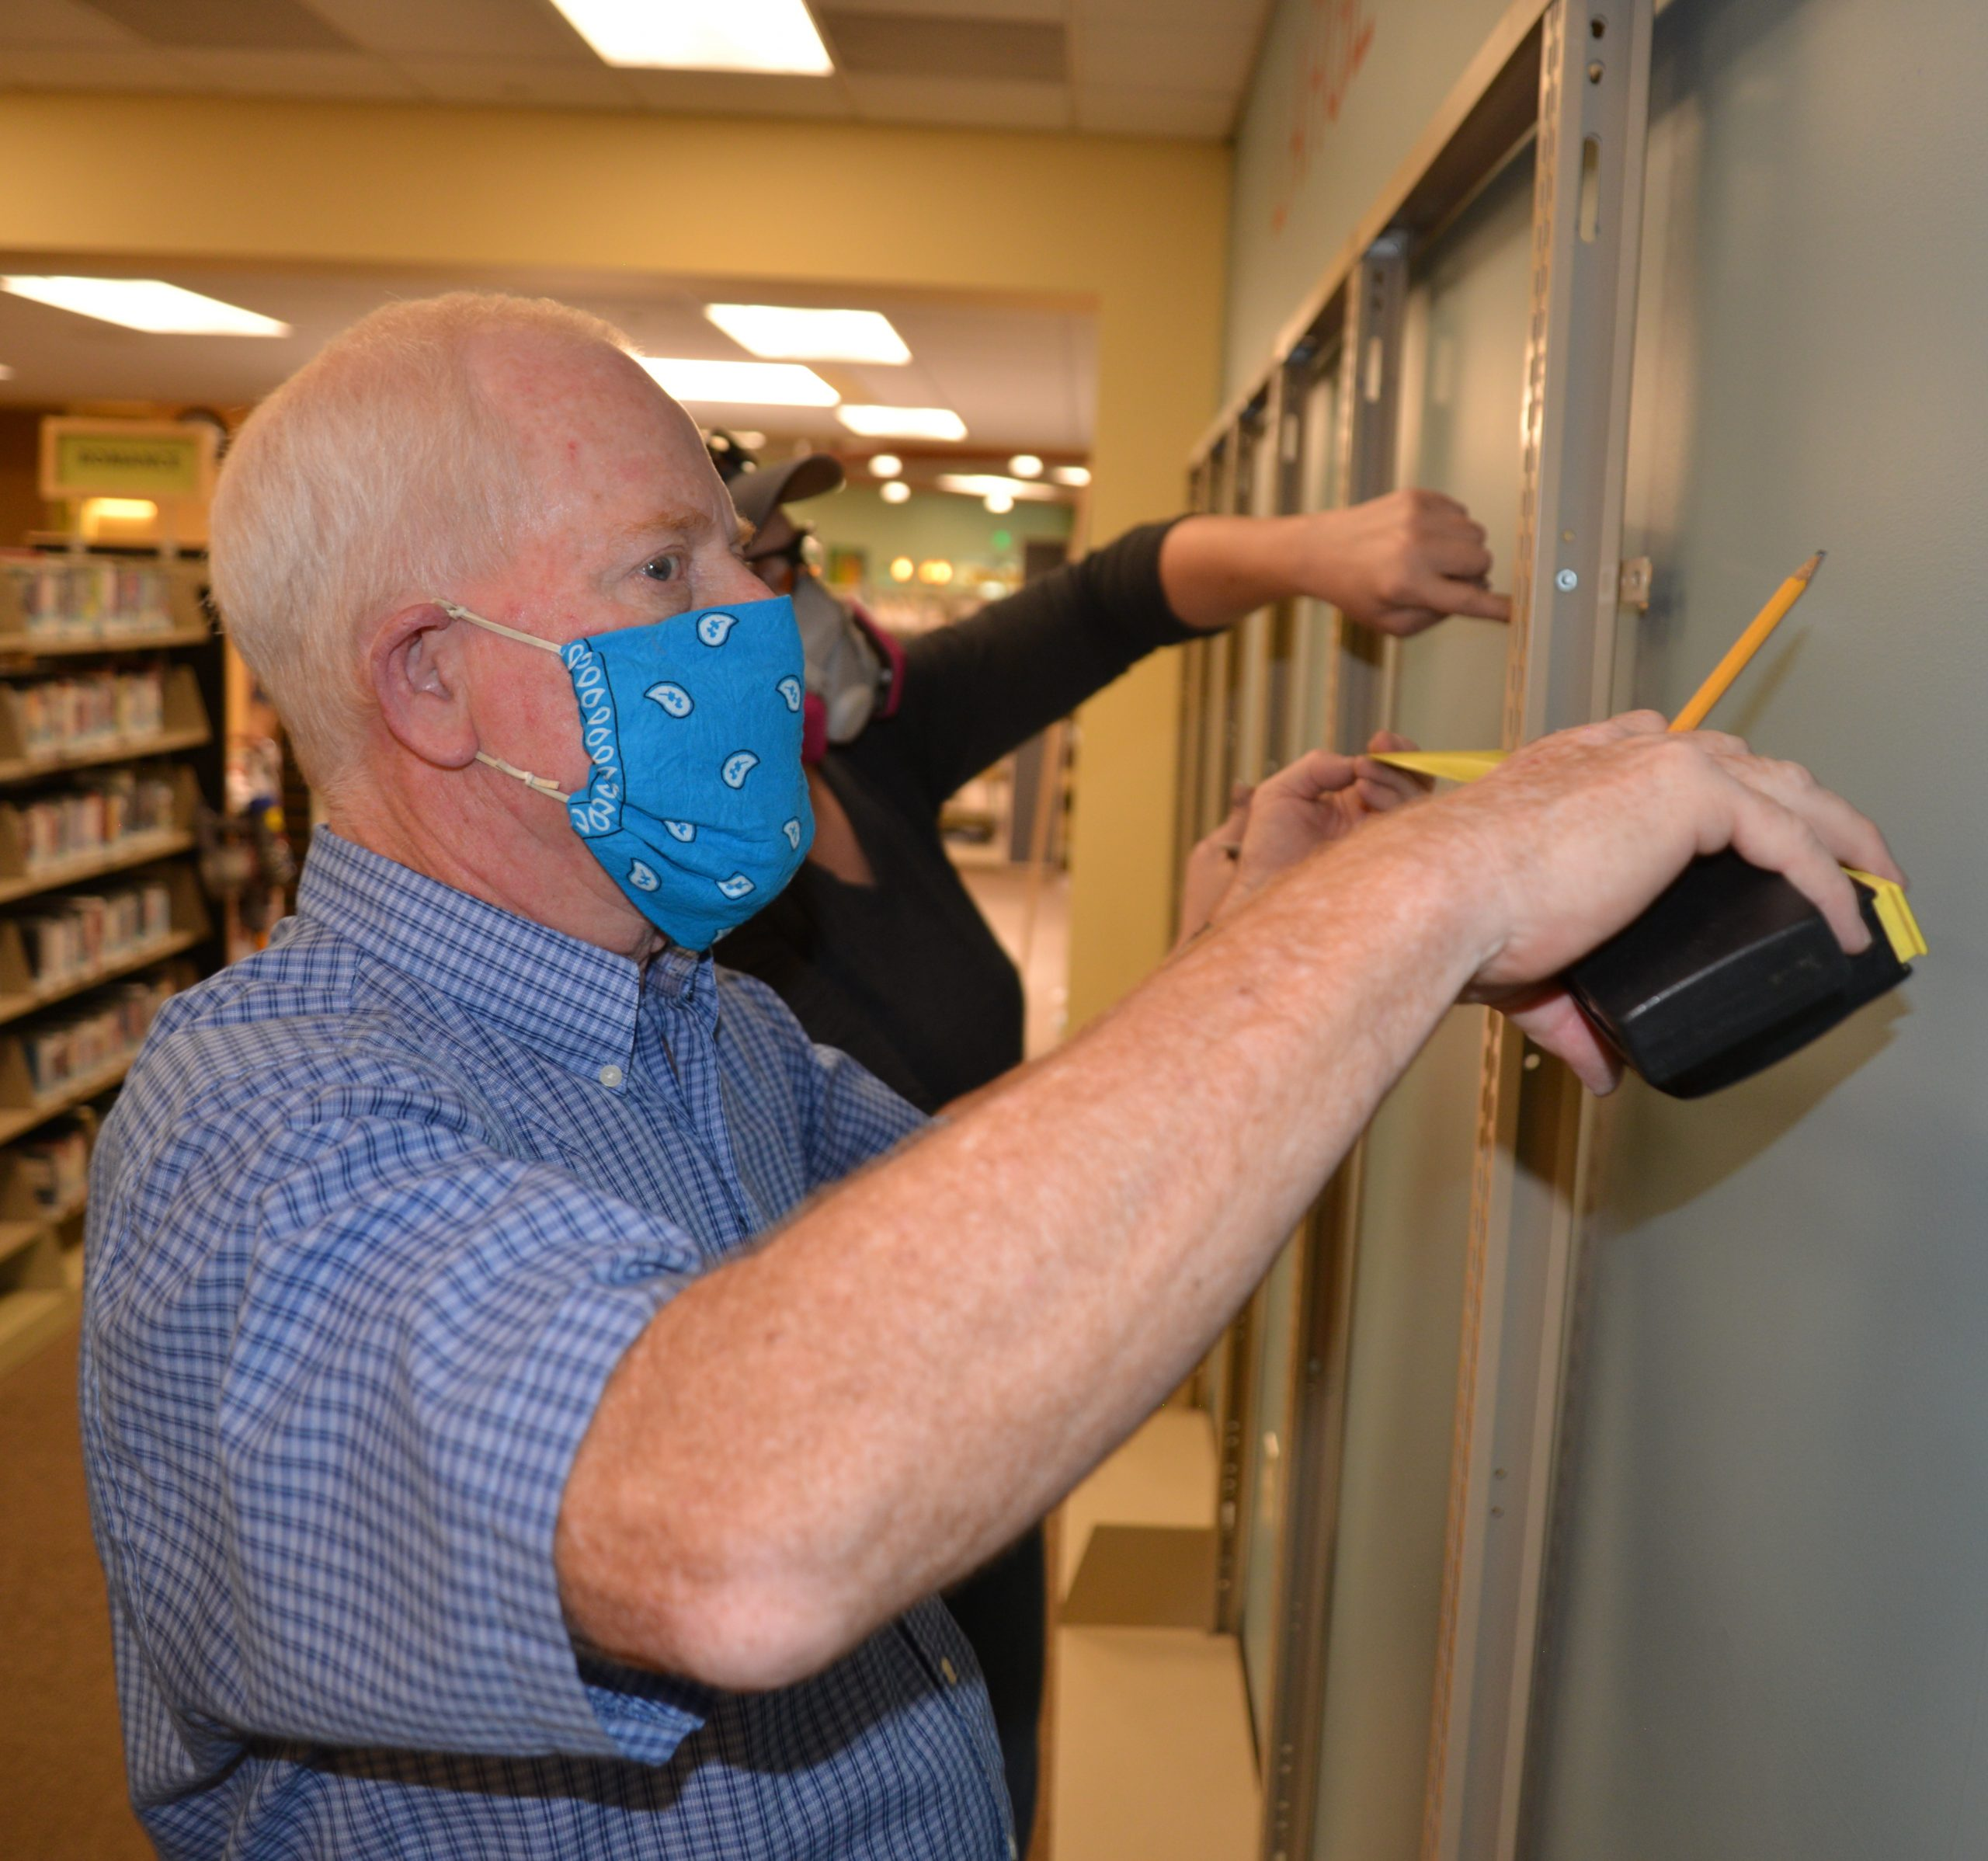 Library staff wearing masks install new shelving on a wall in a library buidling